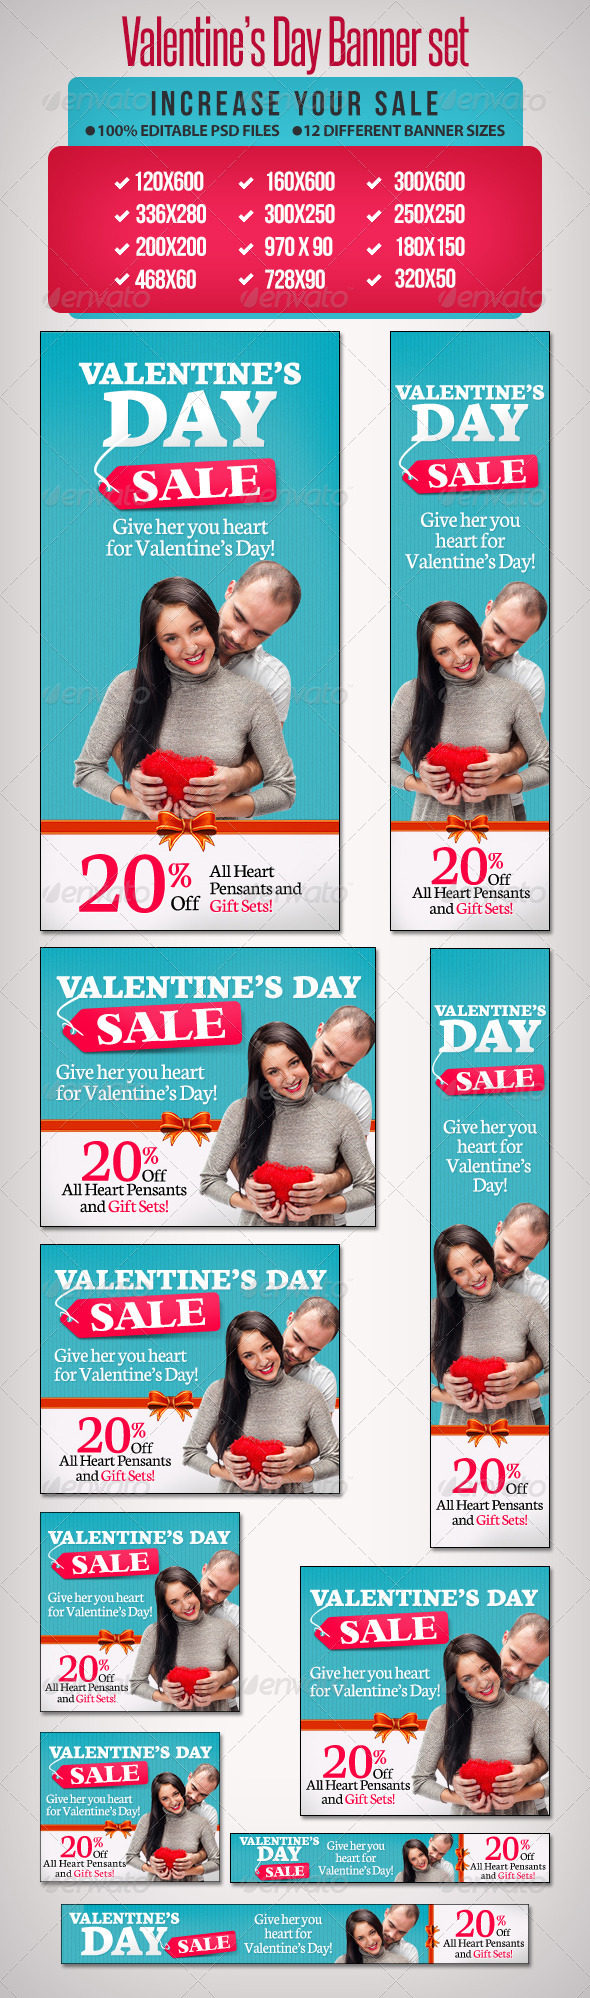 GraphicRiver Valentine s Day Banner Set 4 6598648